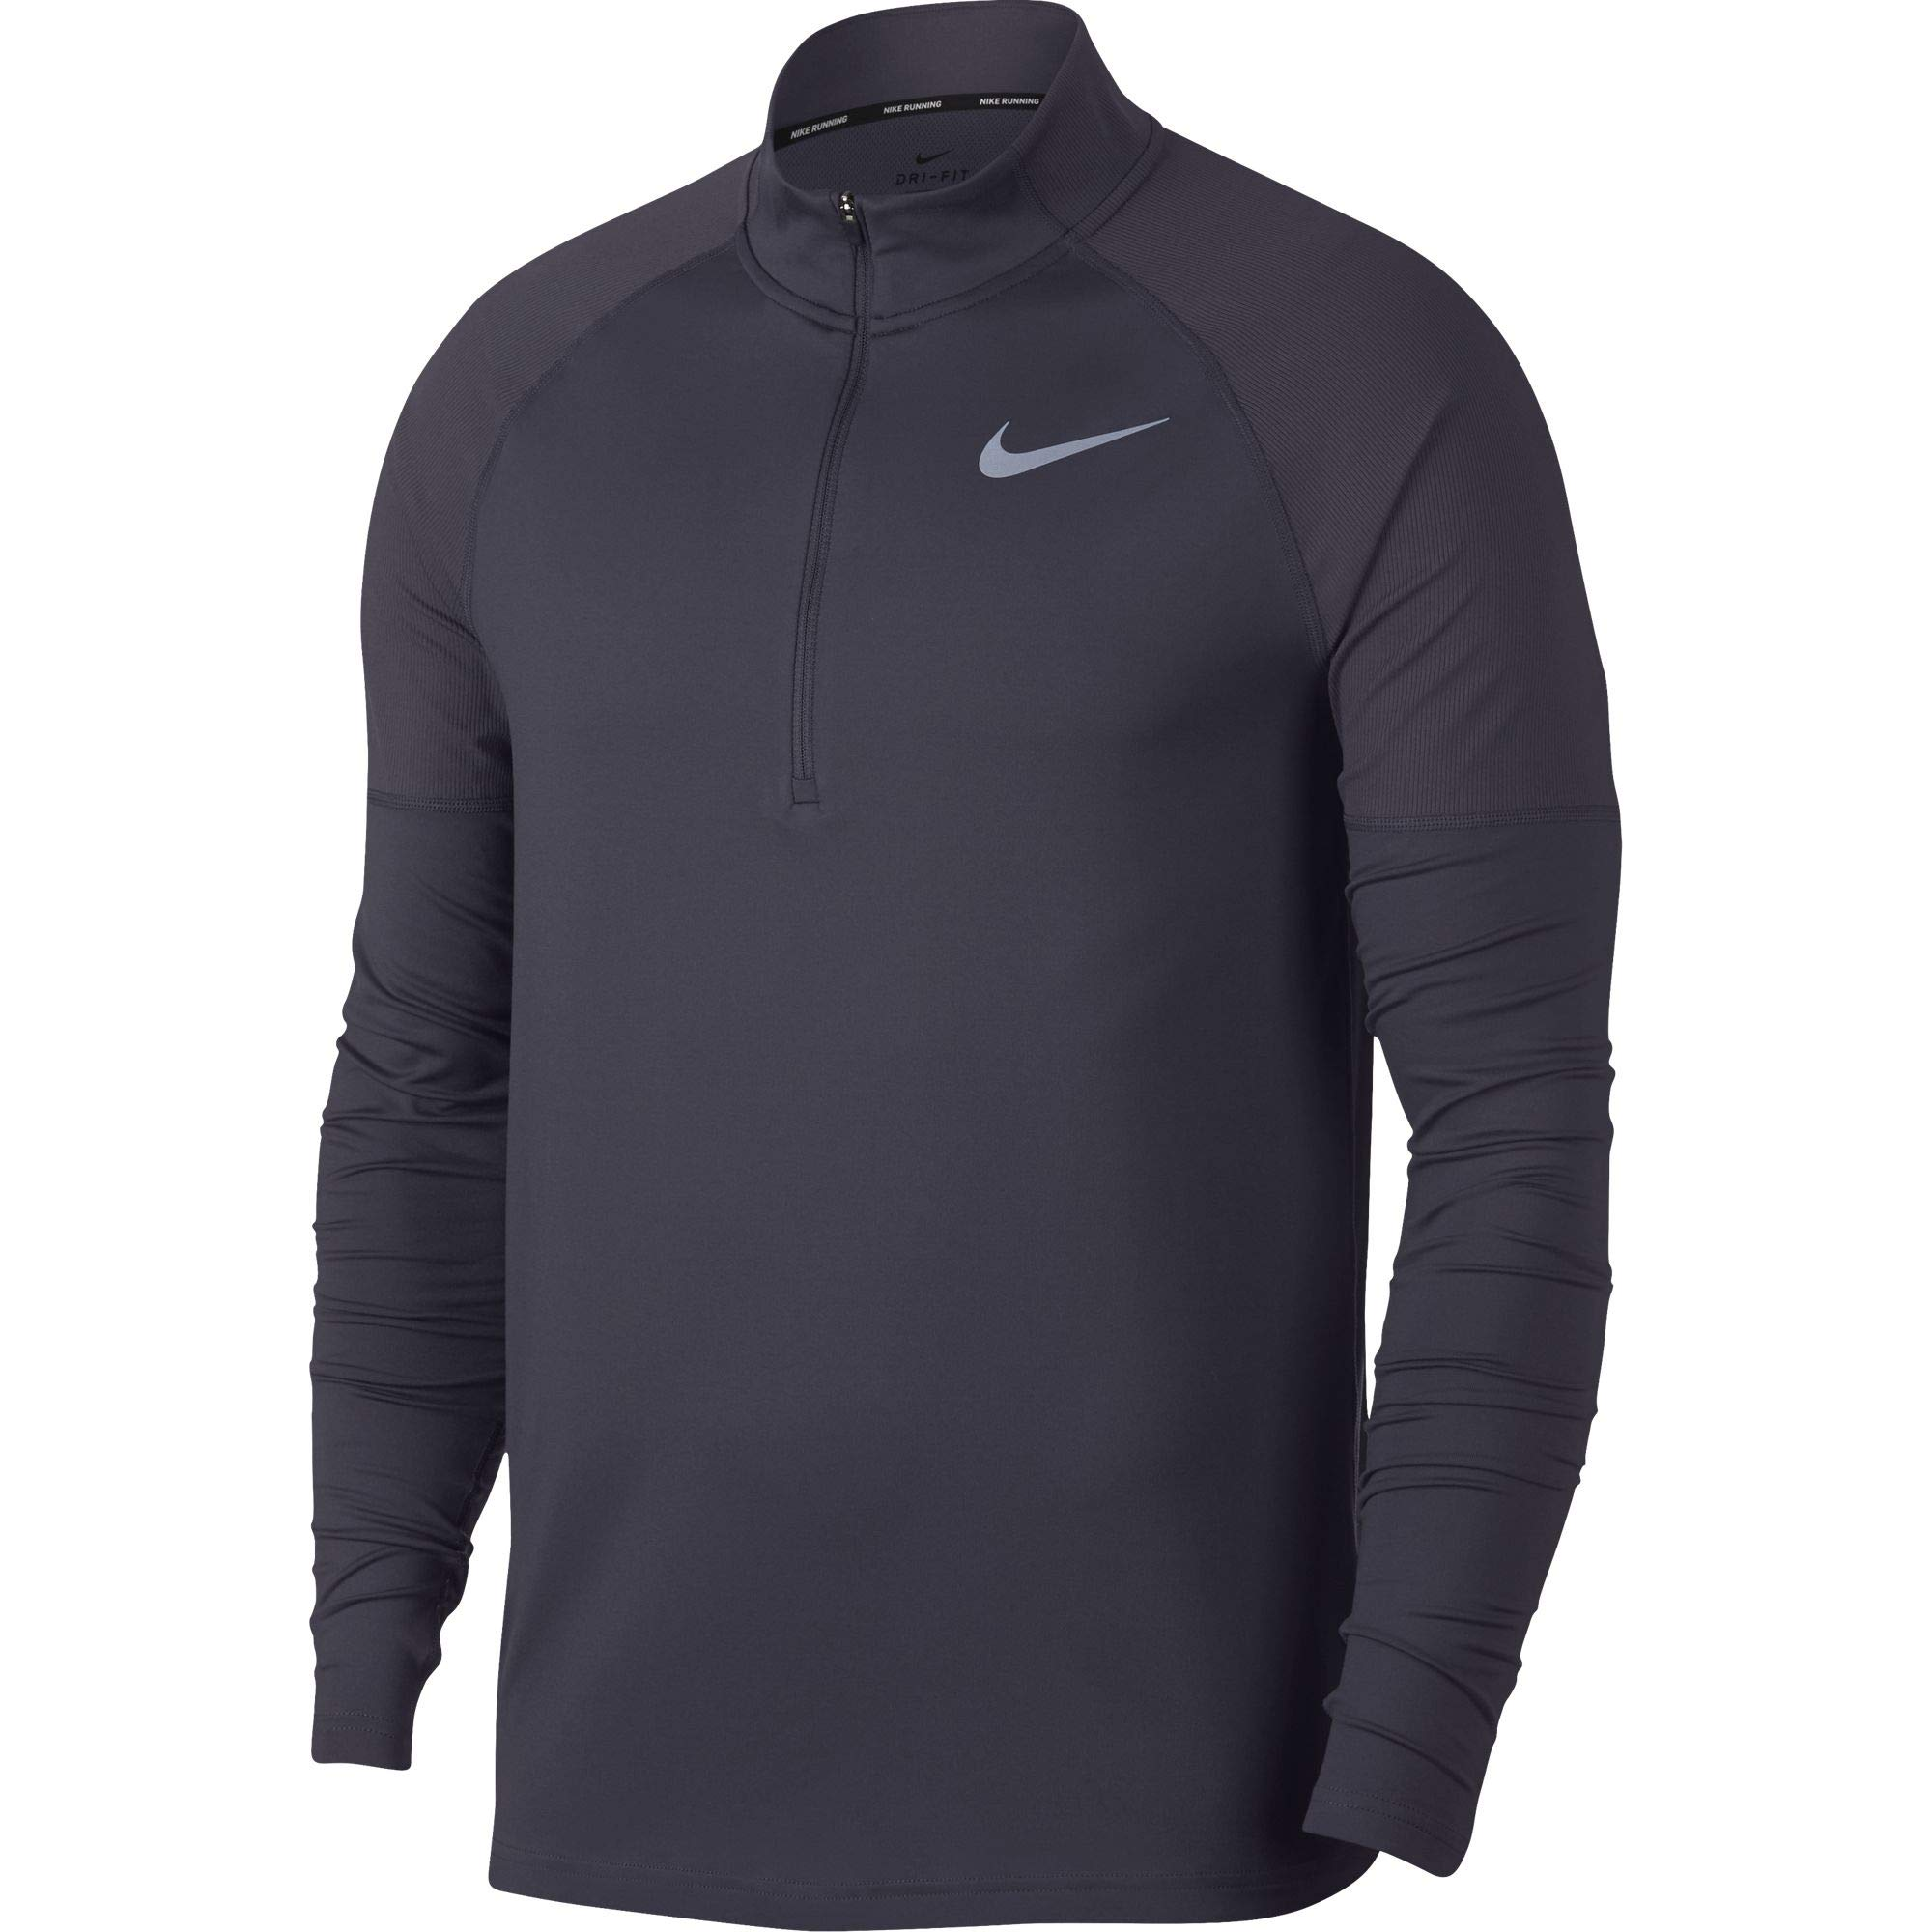 Nike Men's Element 1/2 Zip Running Top Gridiron Size Medium